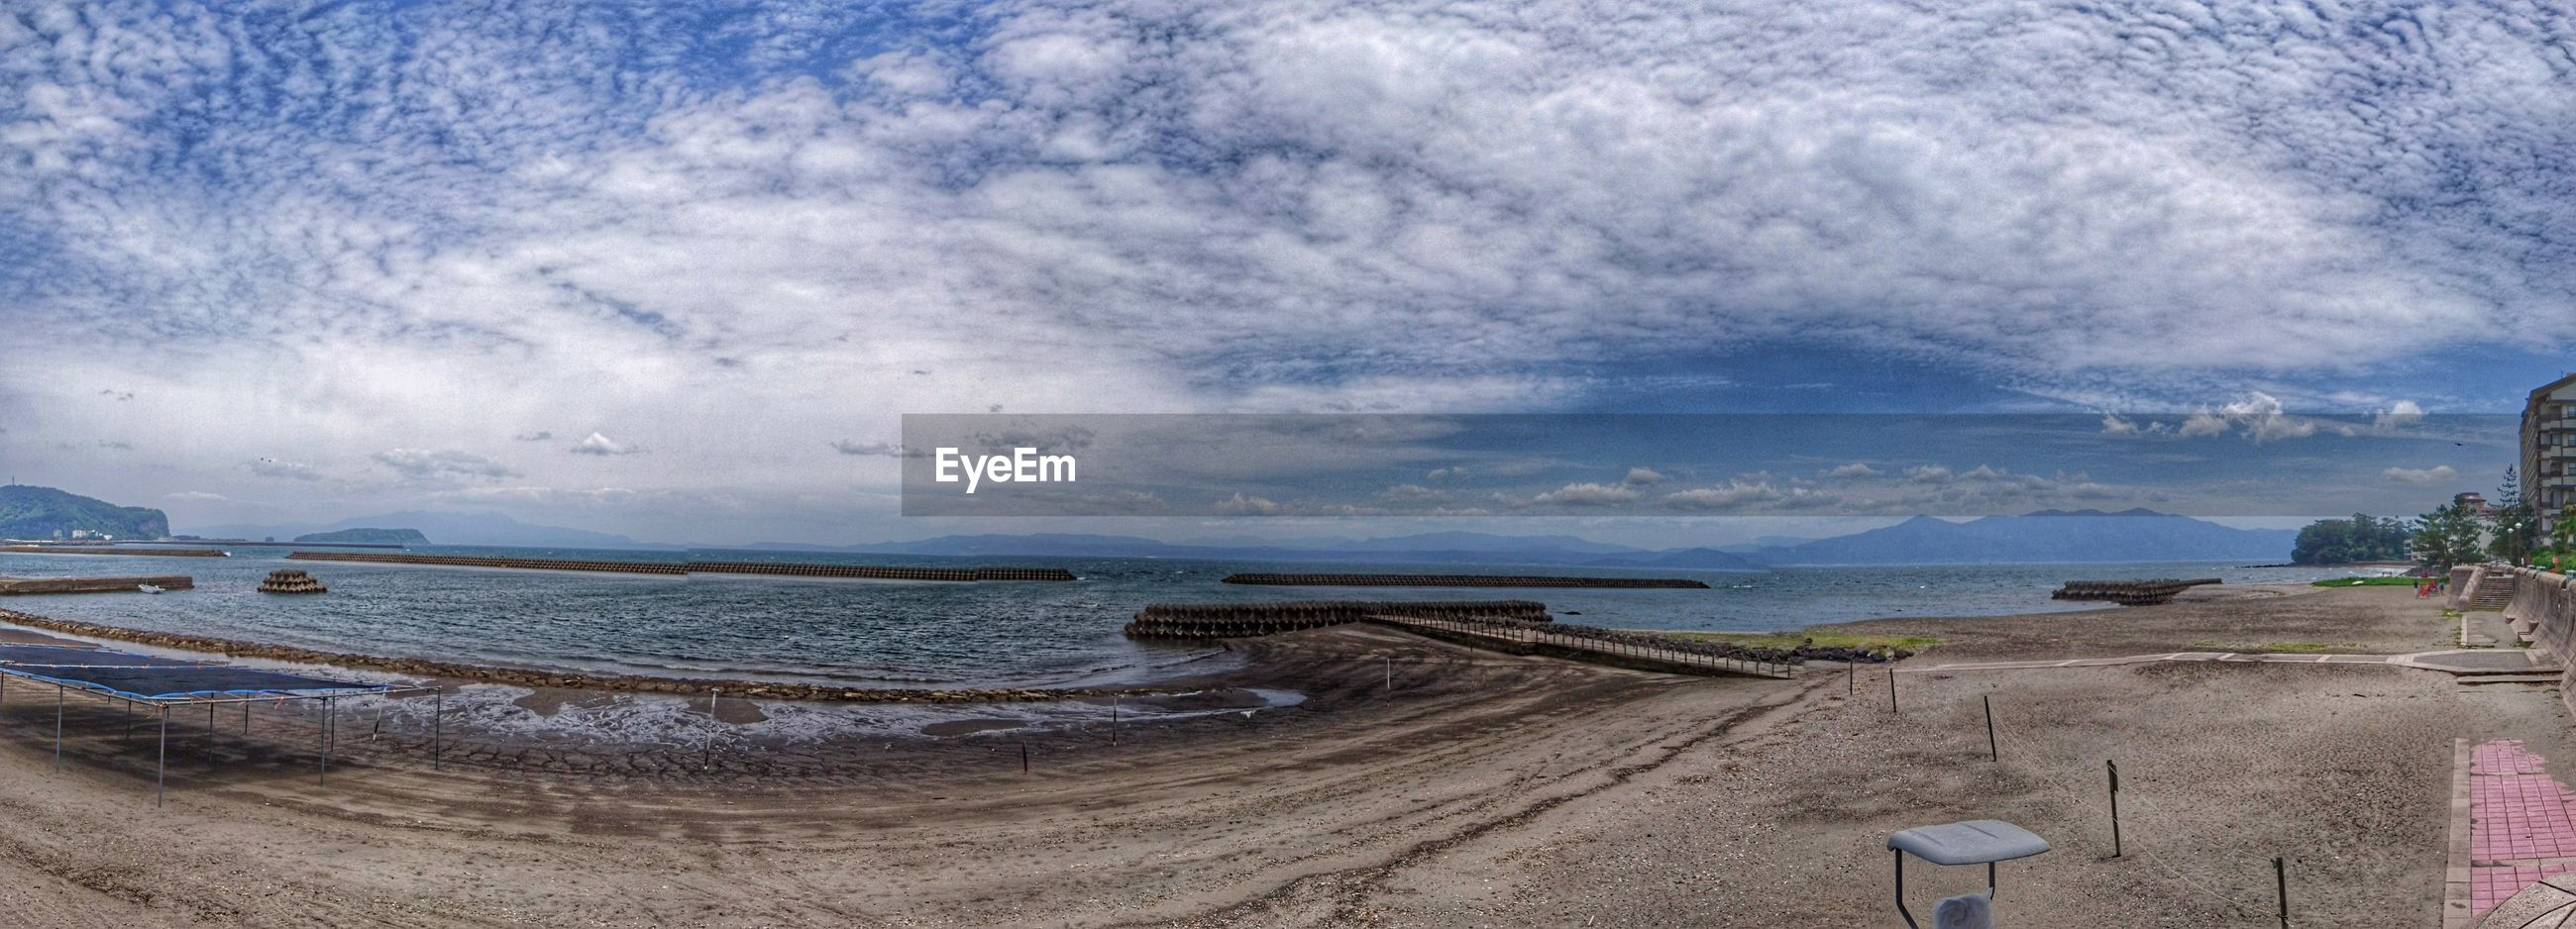 PANORAMIC SHOT OF CALM SEA AGAINST CLOUDY SKY